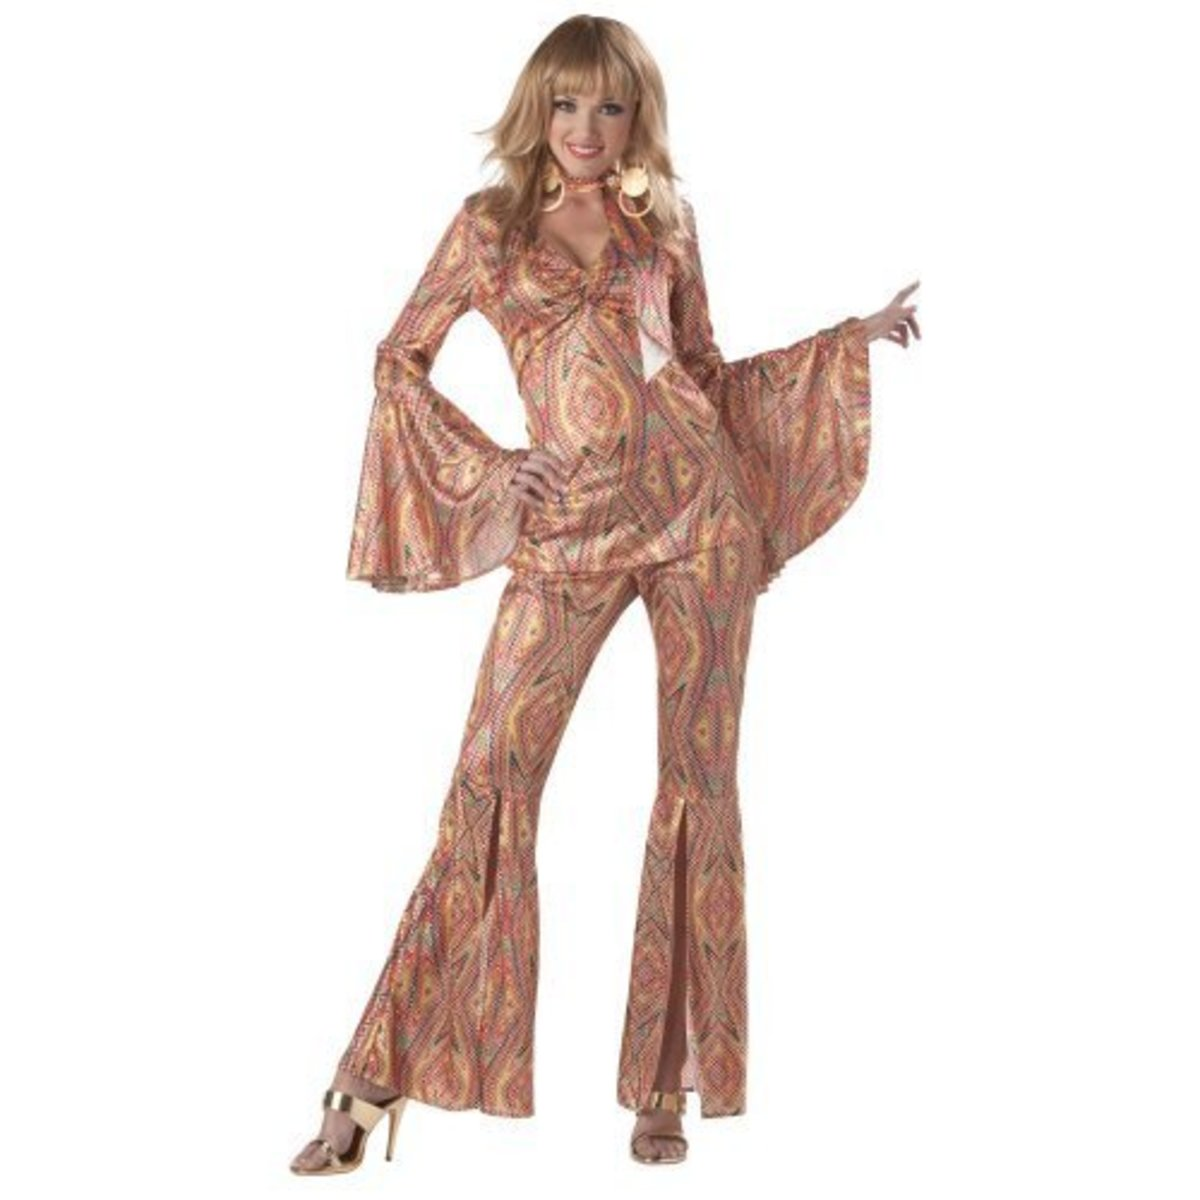 'Disco Fashion' In the seventies. Clothes designed to show off the body and made in materials like figure moulding stretch Lycra were ideal.